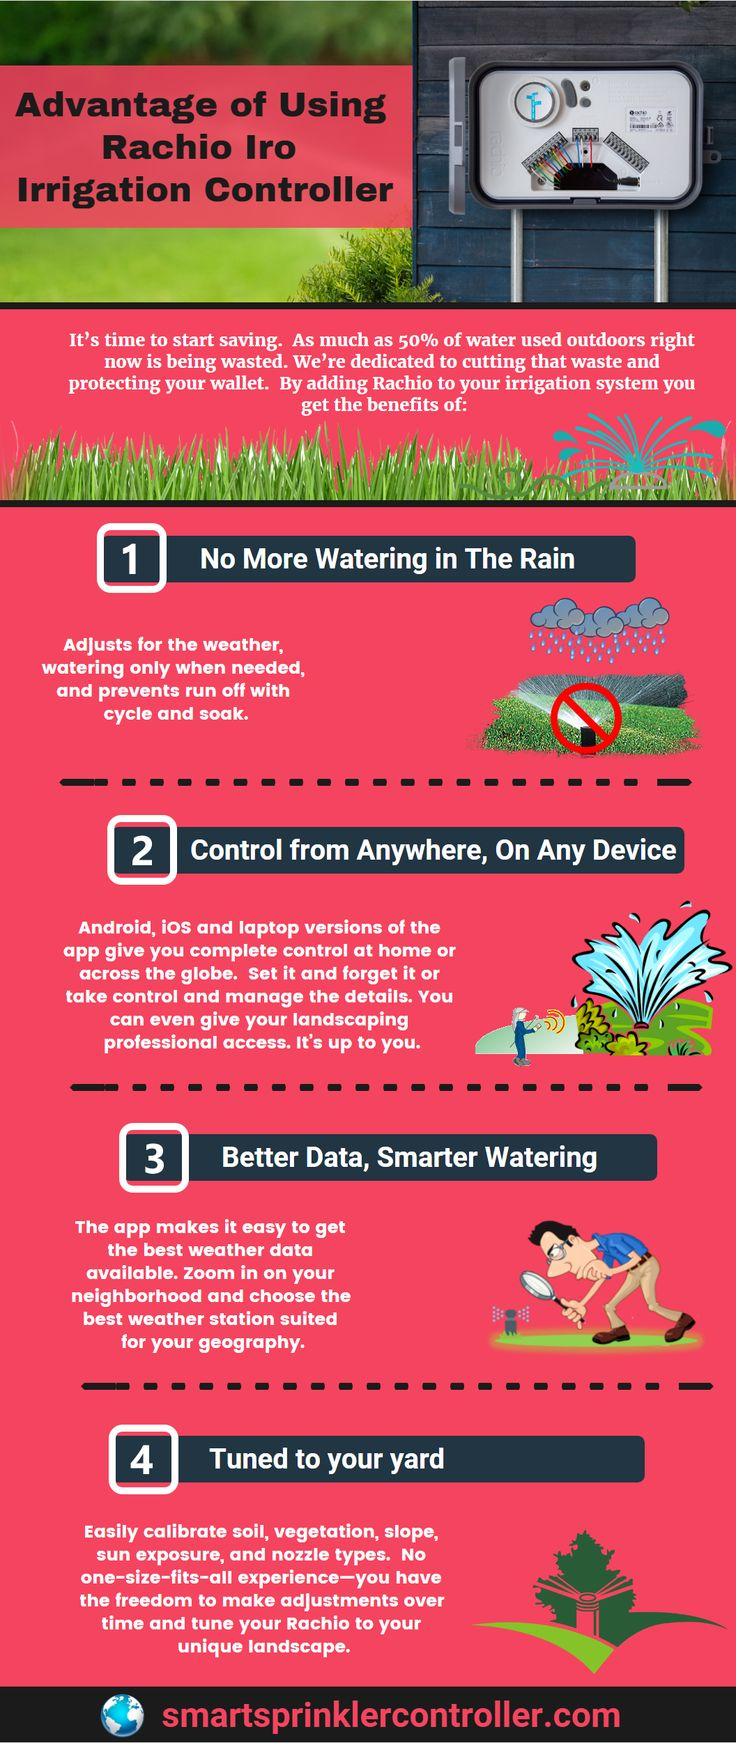 If you are using an #irrigation system for your lawn or garden but you're not happy with it. So use the best Rachio Iro Smart Sprinkler Controller. This infographic showing you advantage of using rachio iro irrigation controller. Have a look out. https://www.smartsprinklercontroller.com/rachio-iro-generation-2-review/